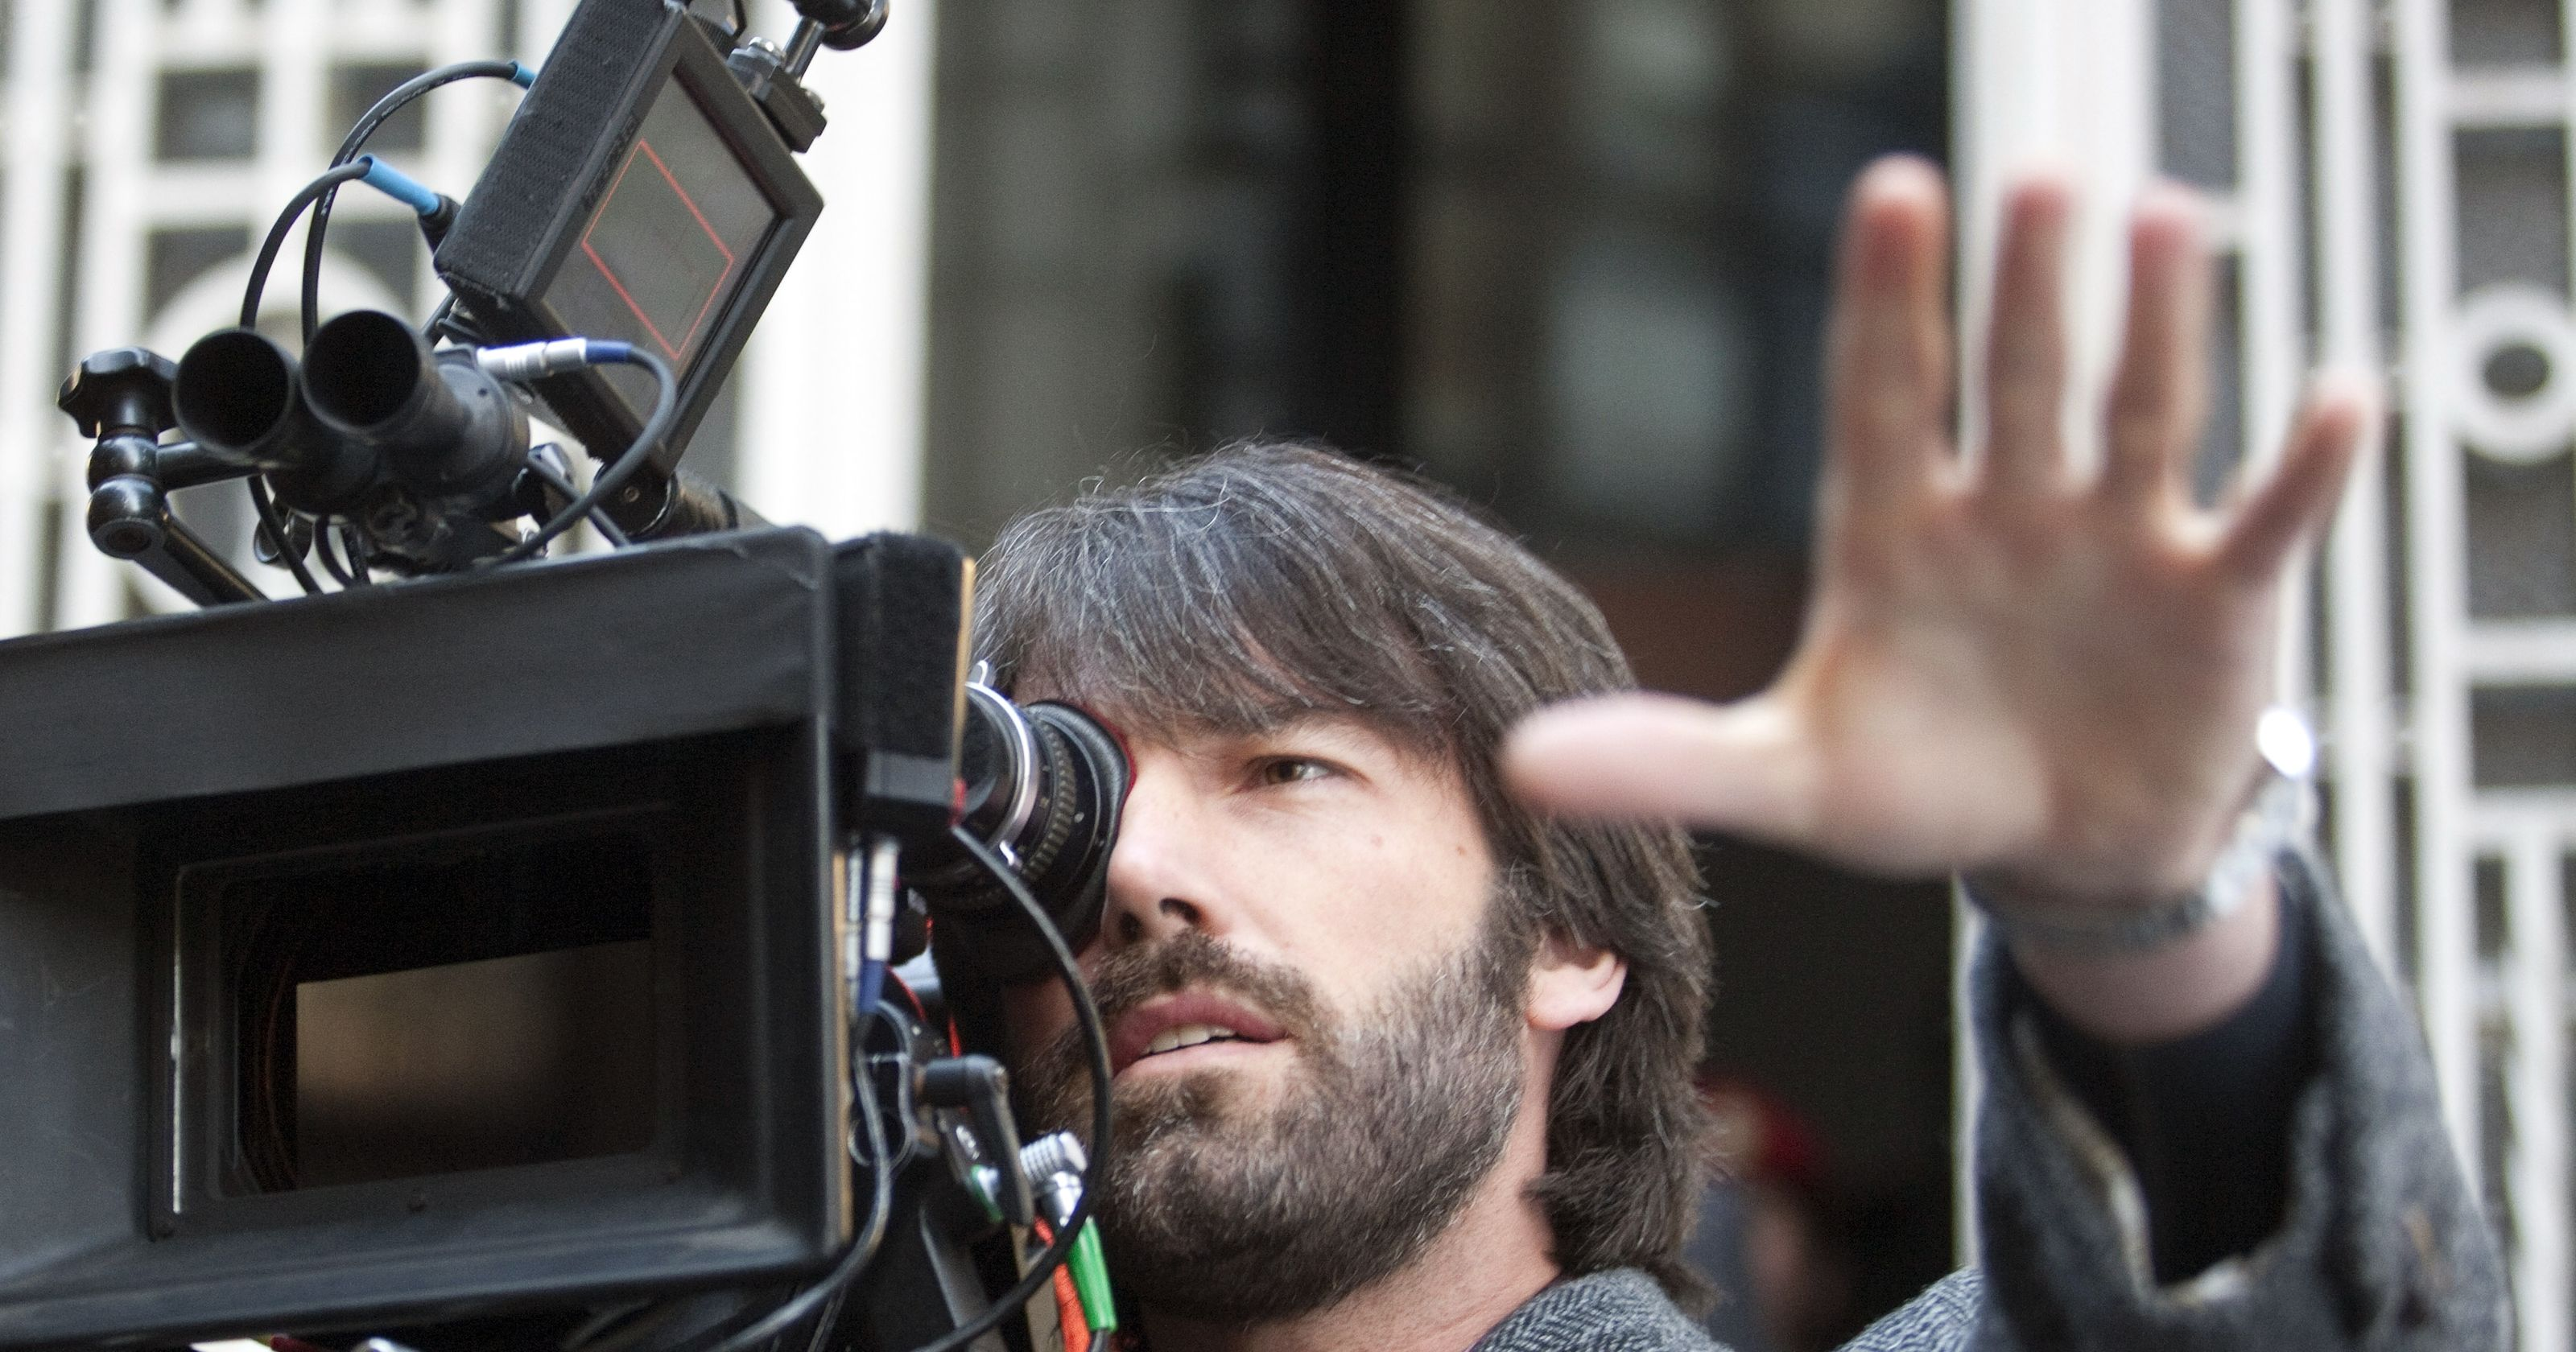 best-spy-movies-netflix-india-argo_image